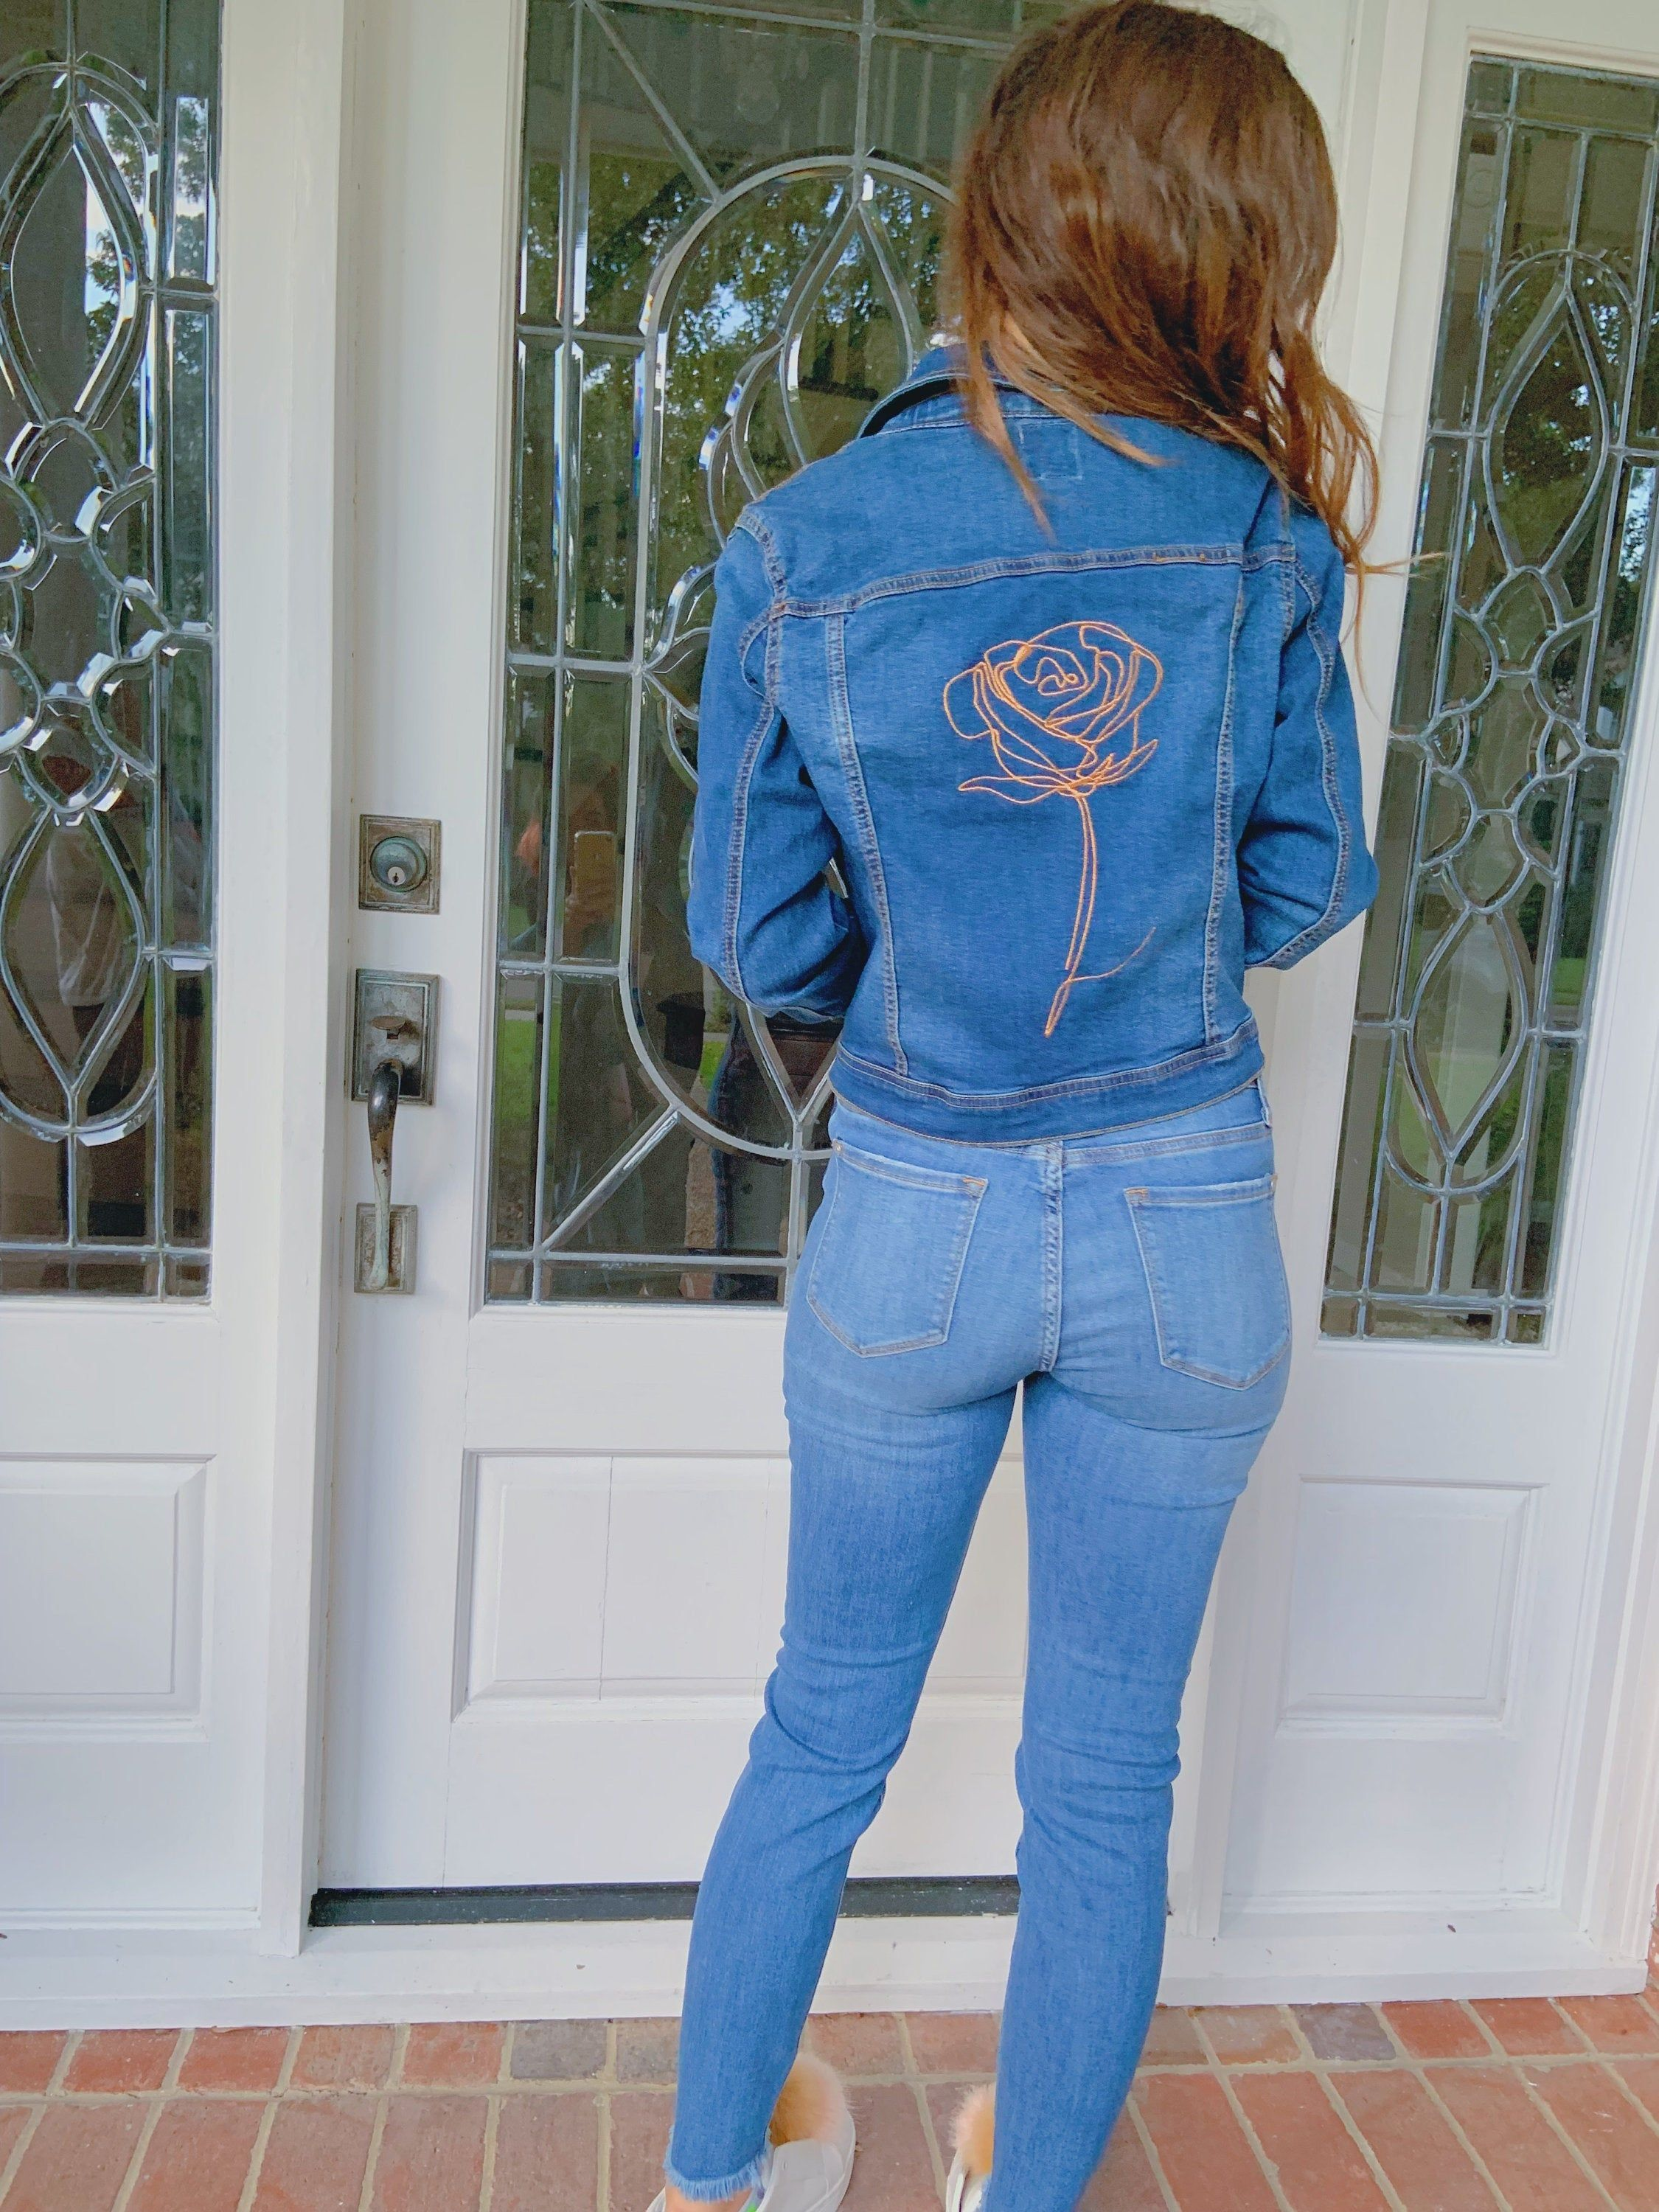 Rose Patch Denim Jacket Ethical Streetwear Aesthetic Clothing Etsy Rose Patch Denim Denim Jacket Patches Denim Street Style [ 3000 x 2250 Pixel ]